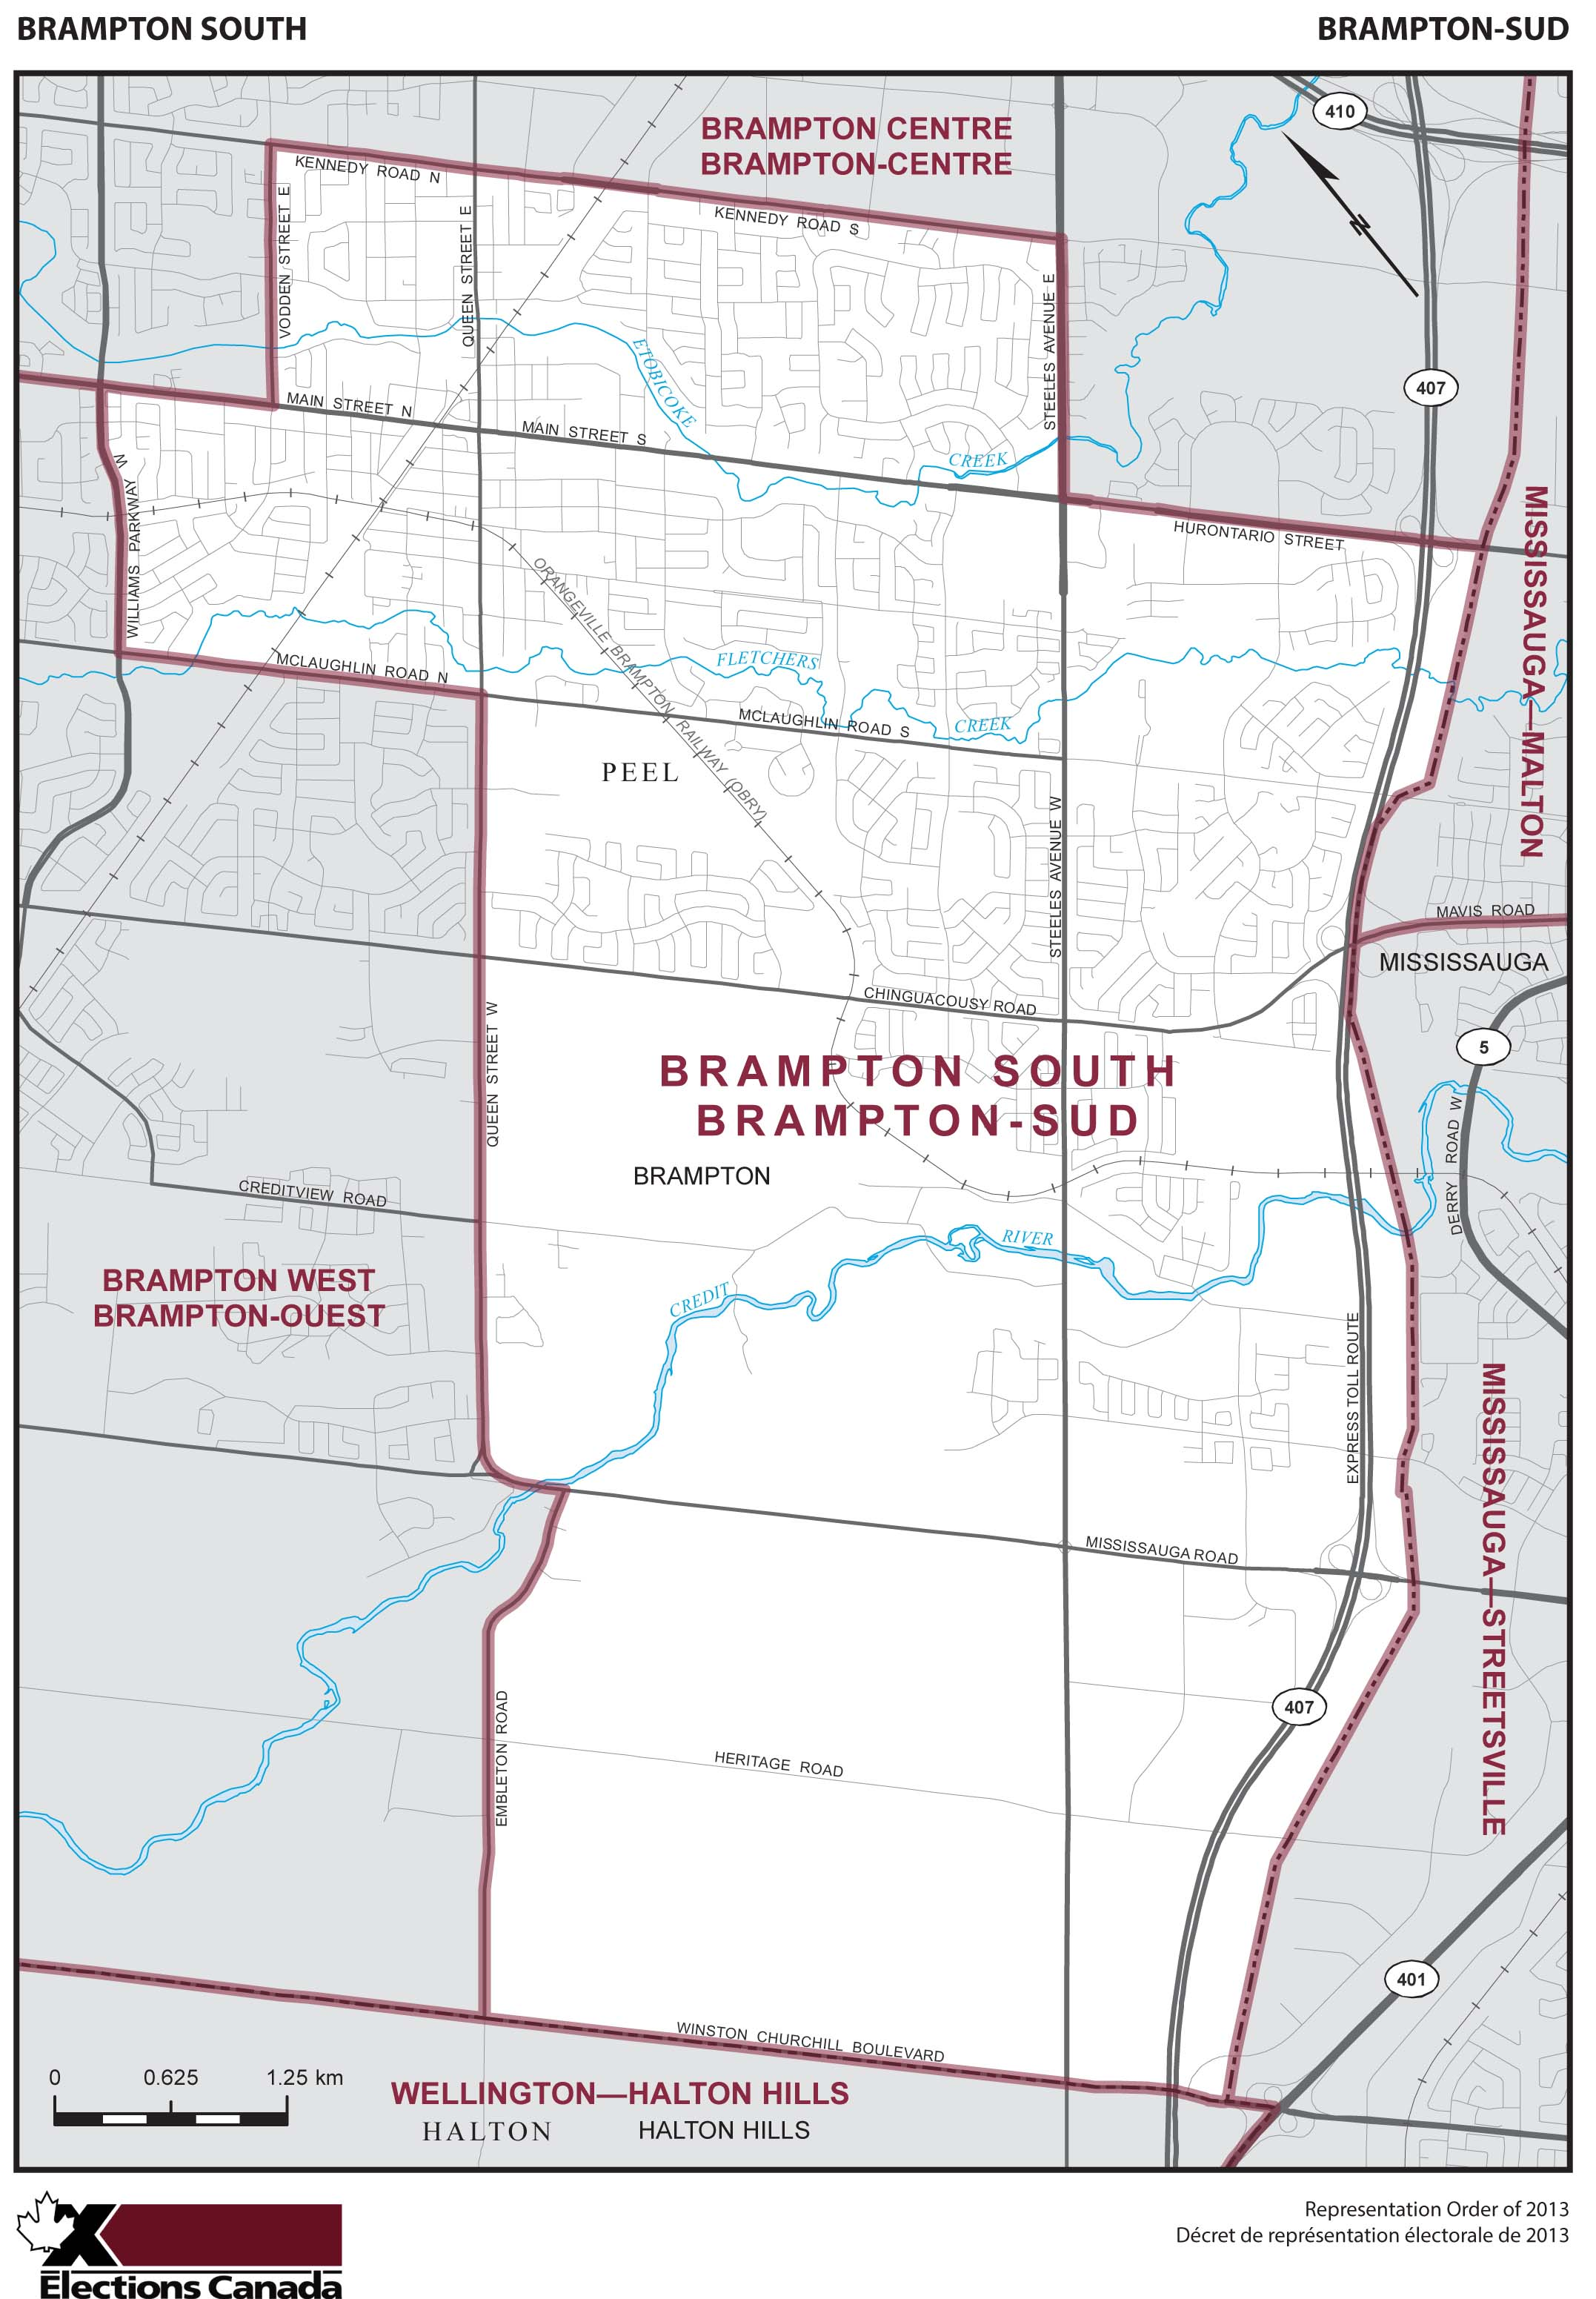 Map: Brampton South, Federal electoral district, 2013 Representation Order (in white), Ontario